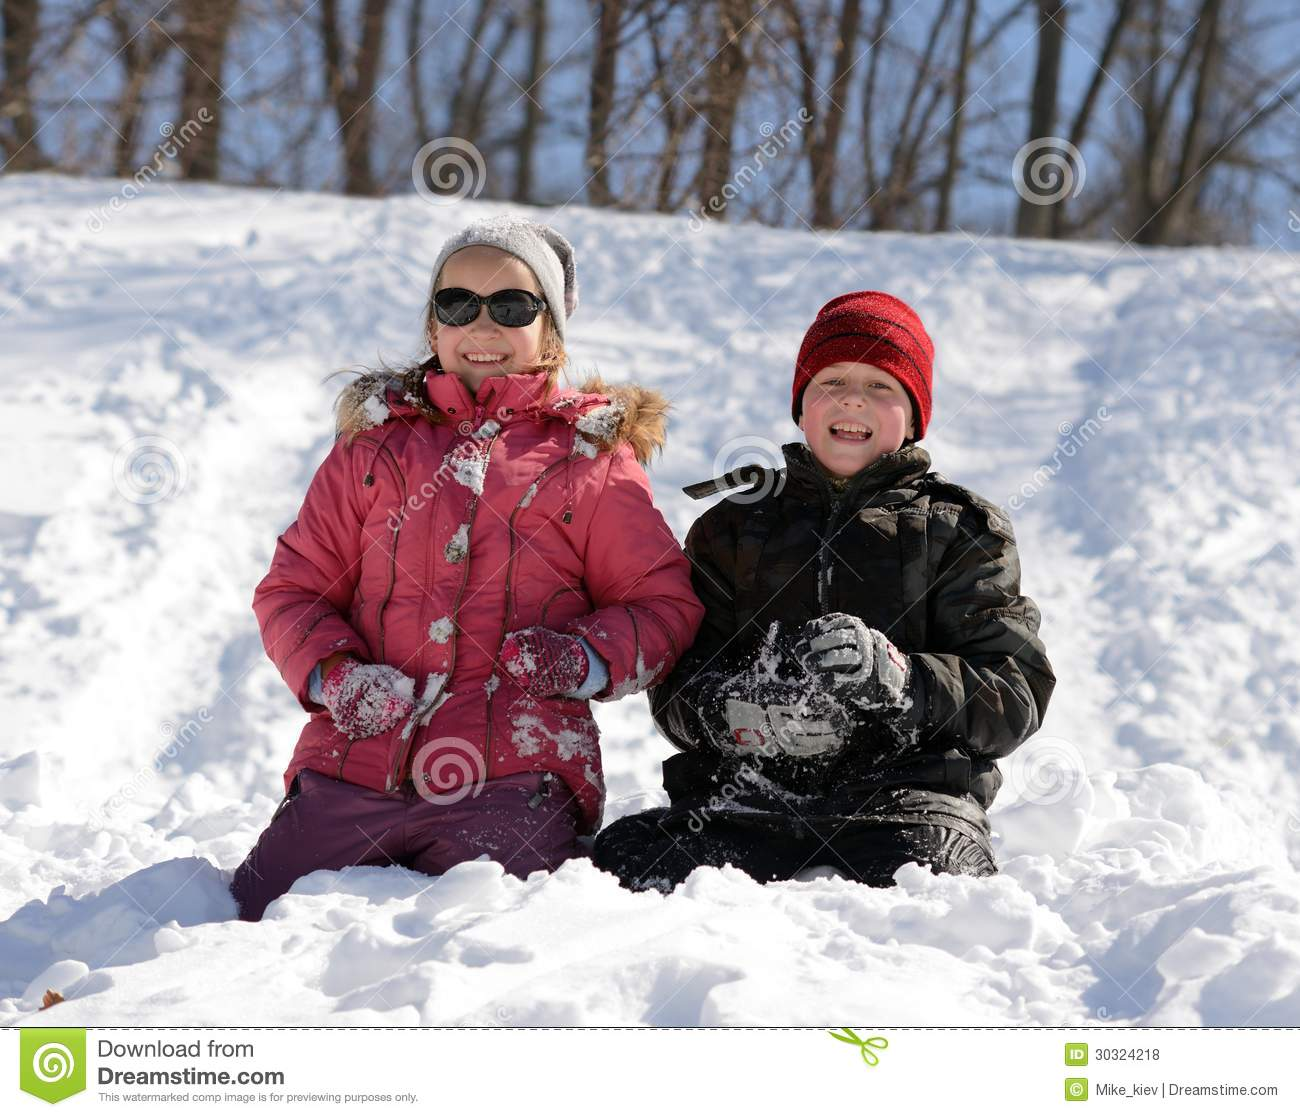 Children playing in snow royalty free stock photos image for Vacation in the snow